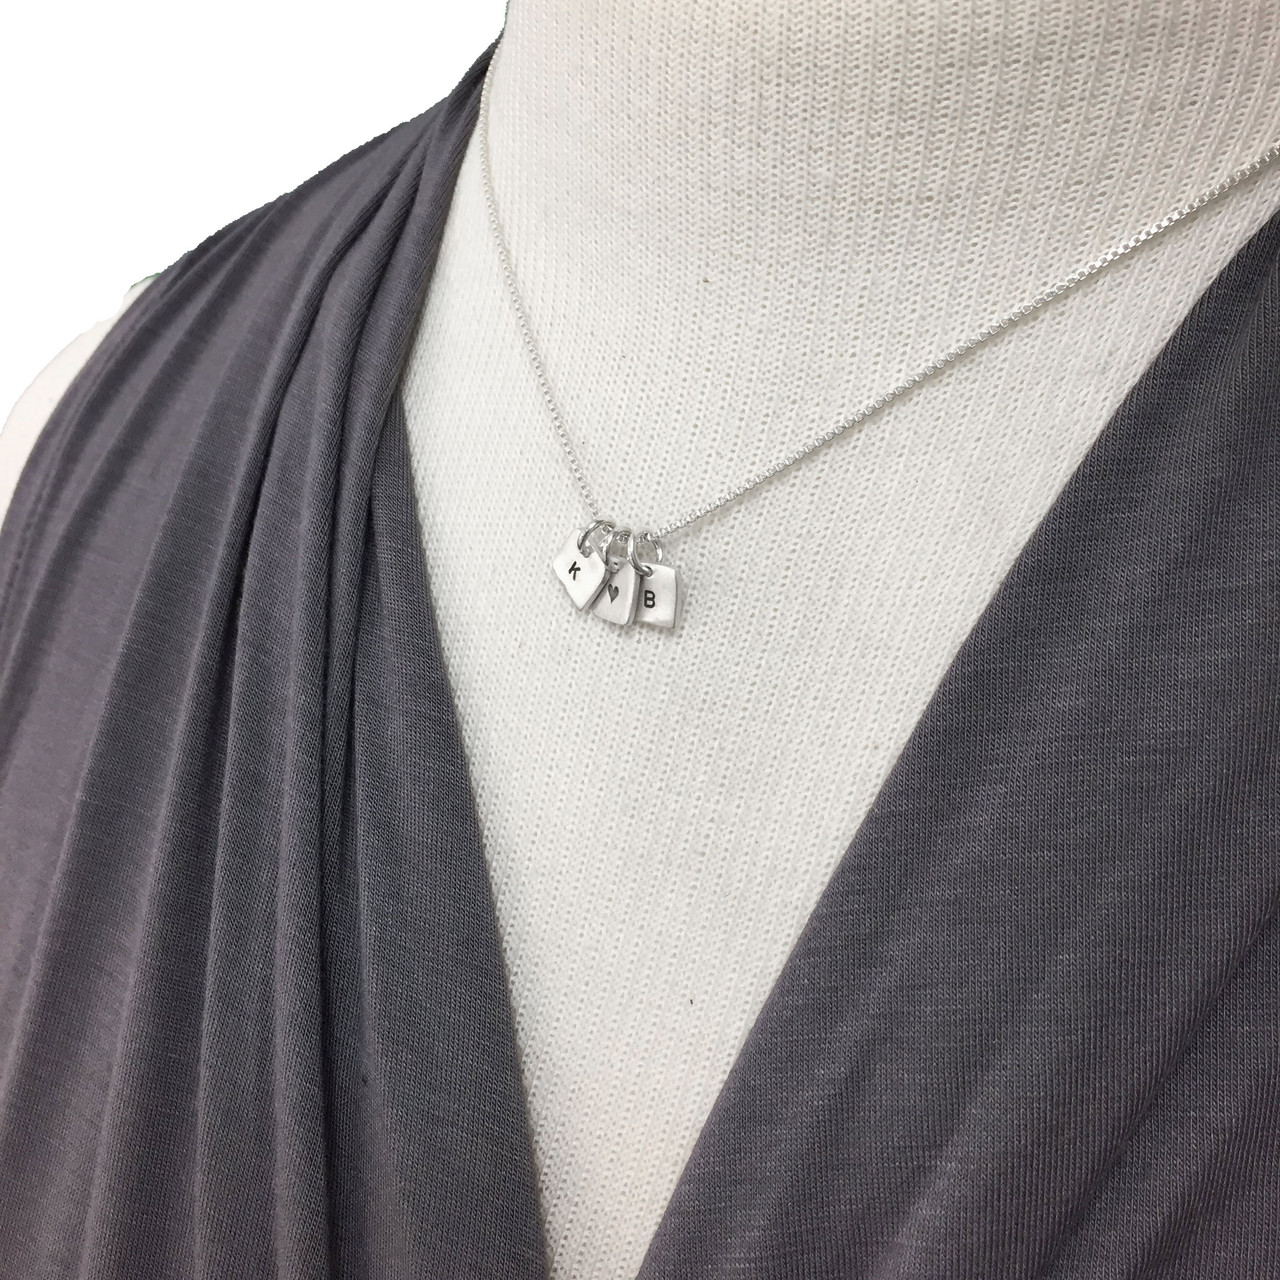 Sterling silver personalized initial necklace with tiny squares on model